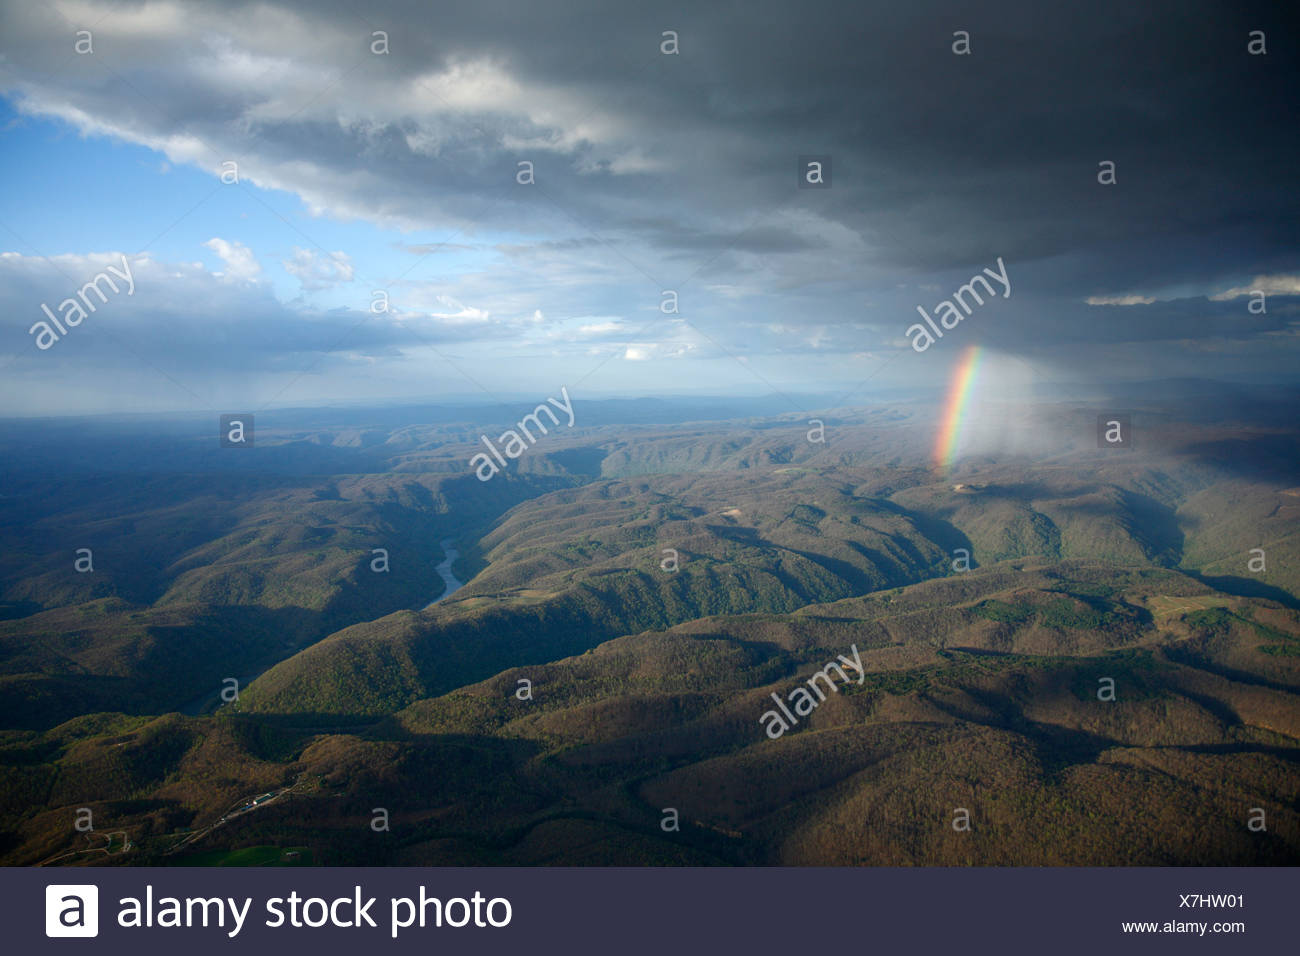 Aerial view of a rainbow appearing after a receding storm over the New River Gorge near Fayetteville, WV - Stock Image